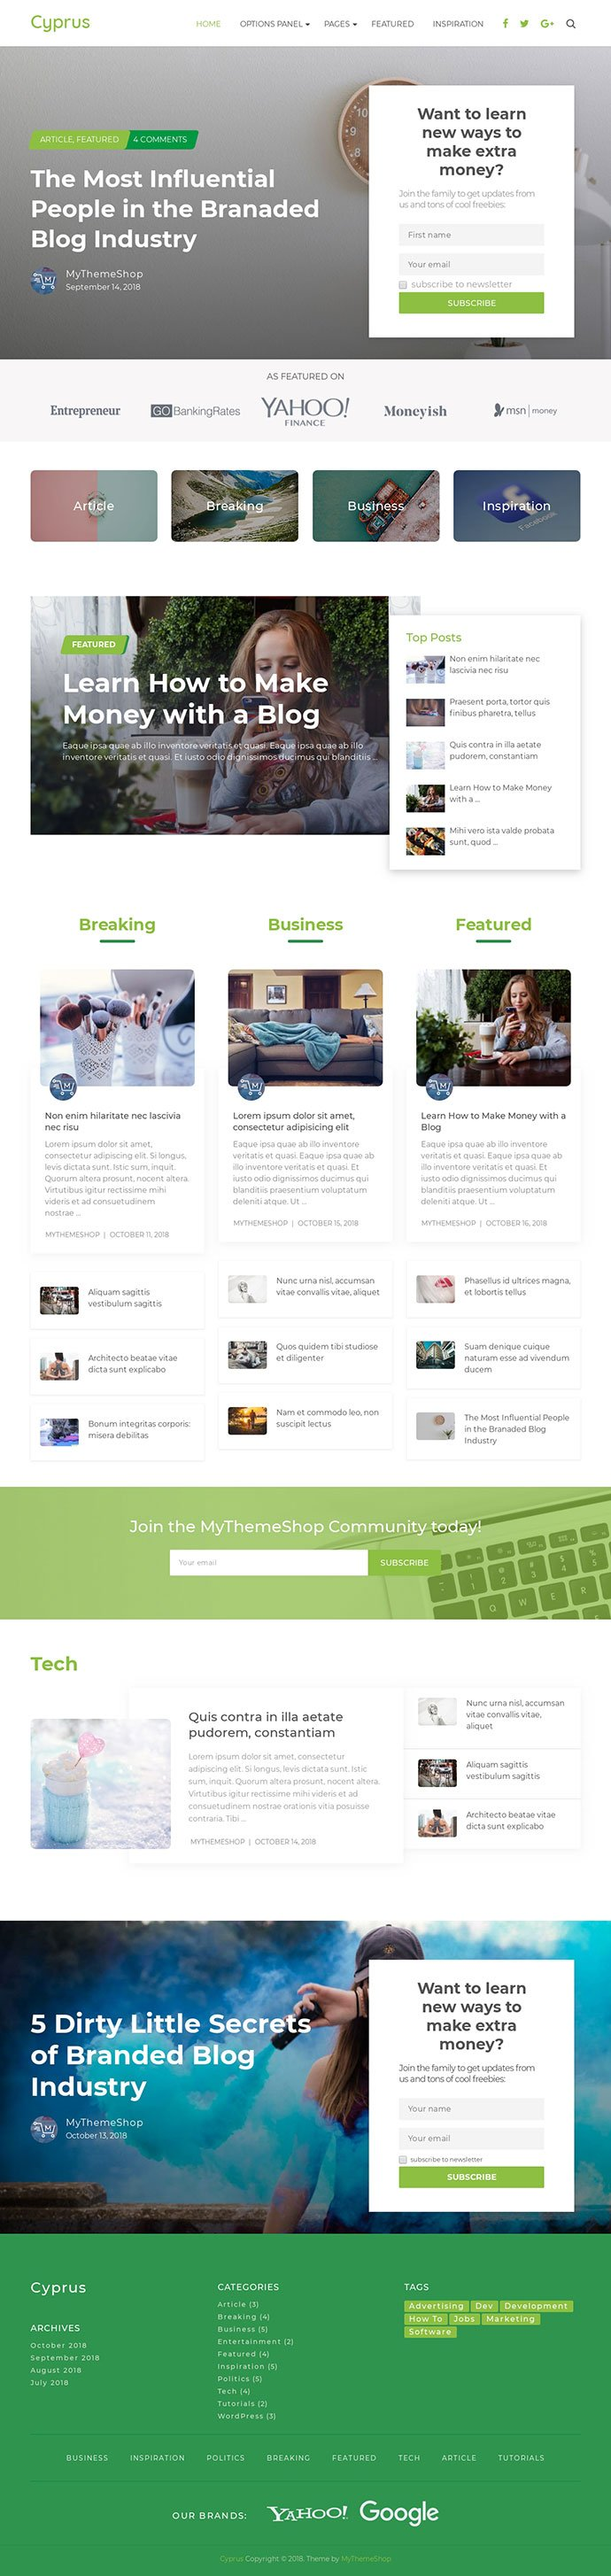 Cyprus-Beautiful-and-Unique-Premium-WordPress-Theme